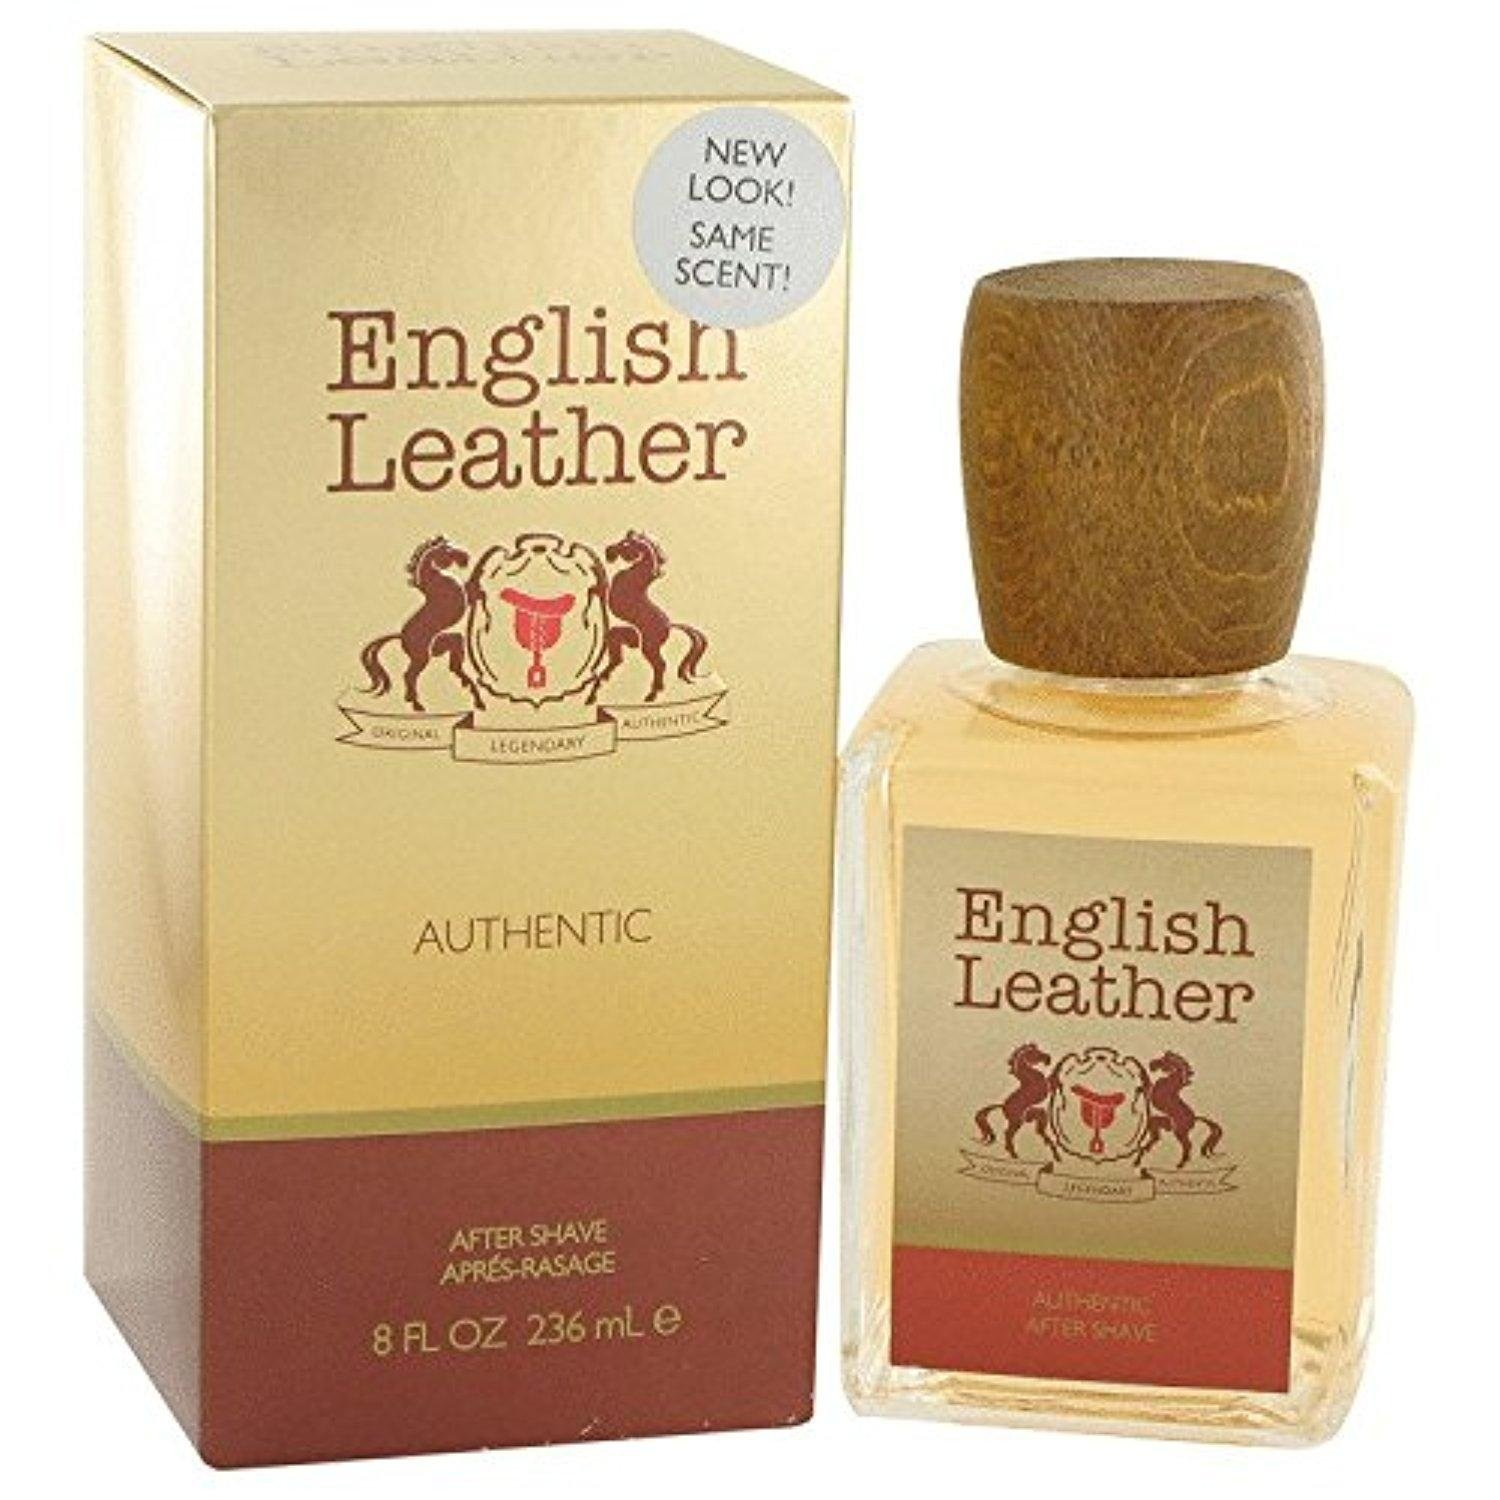 ENGLISH LEATHER by Dana for Men After Shave Splash, 8 Ounce 118130